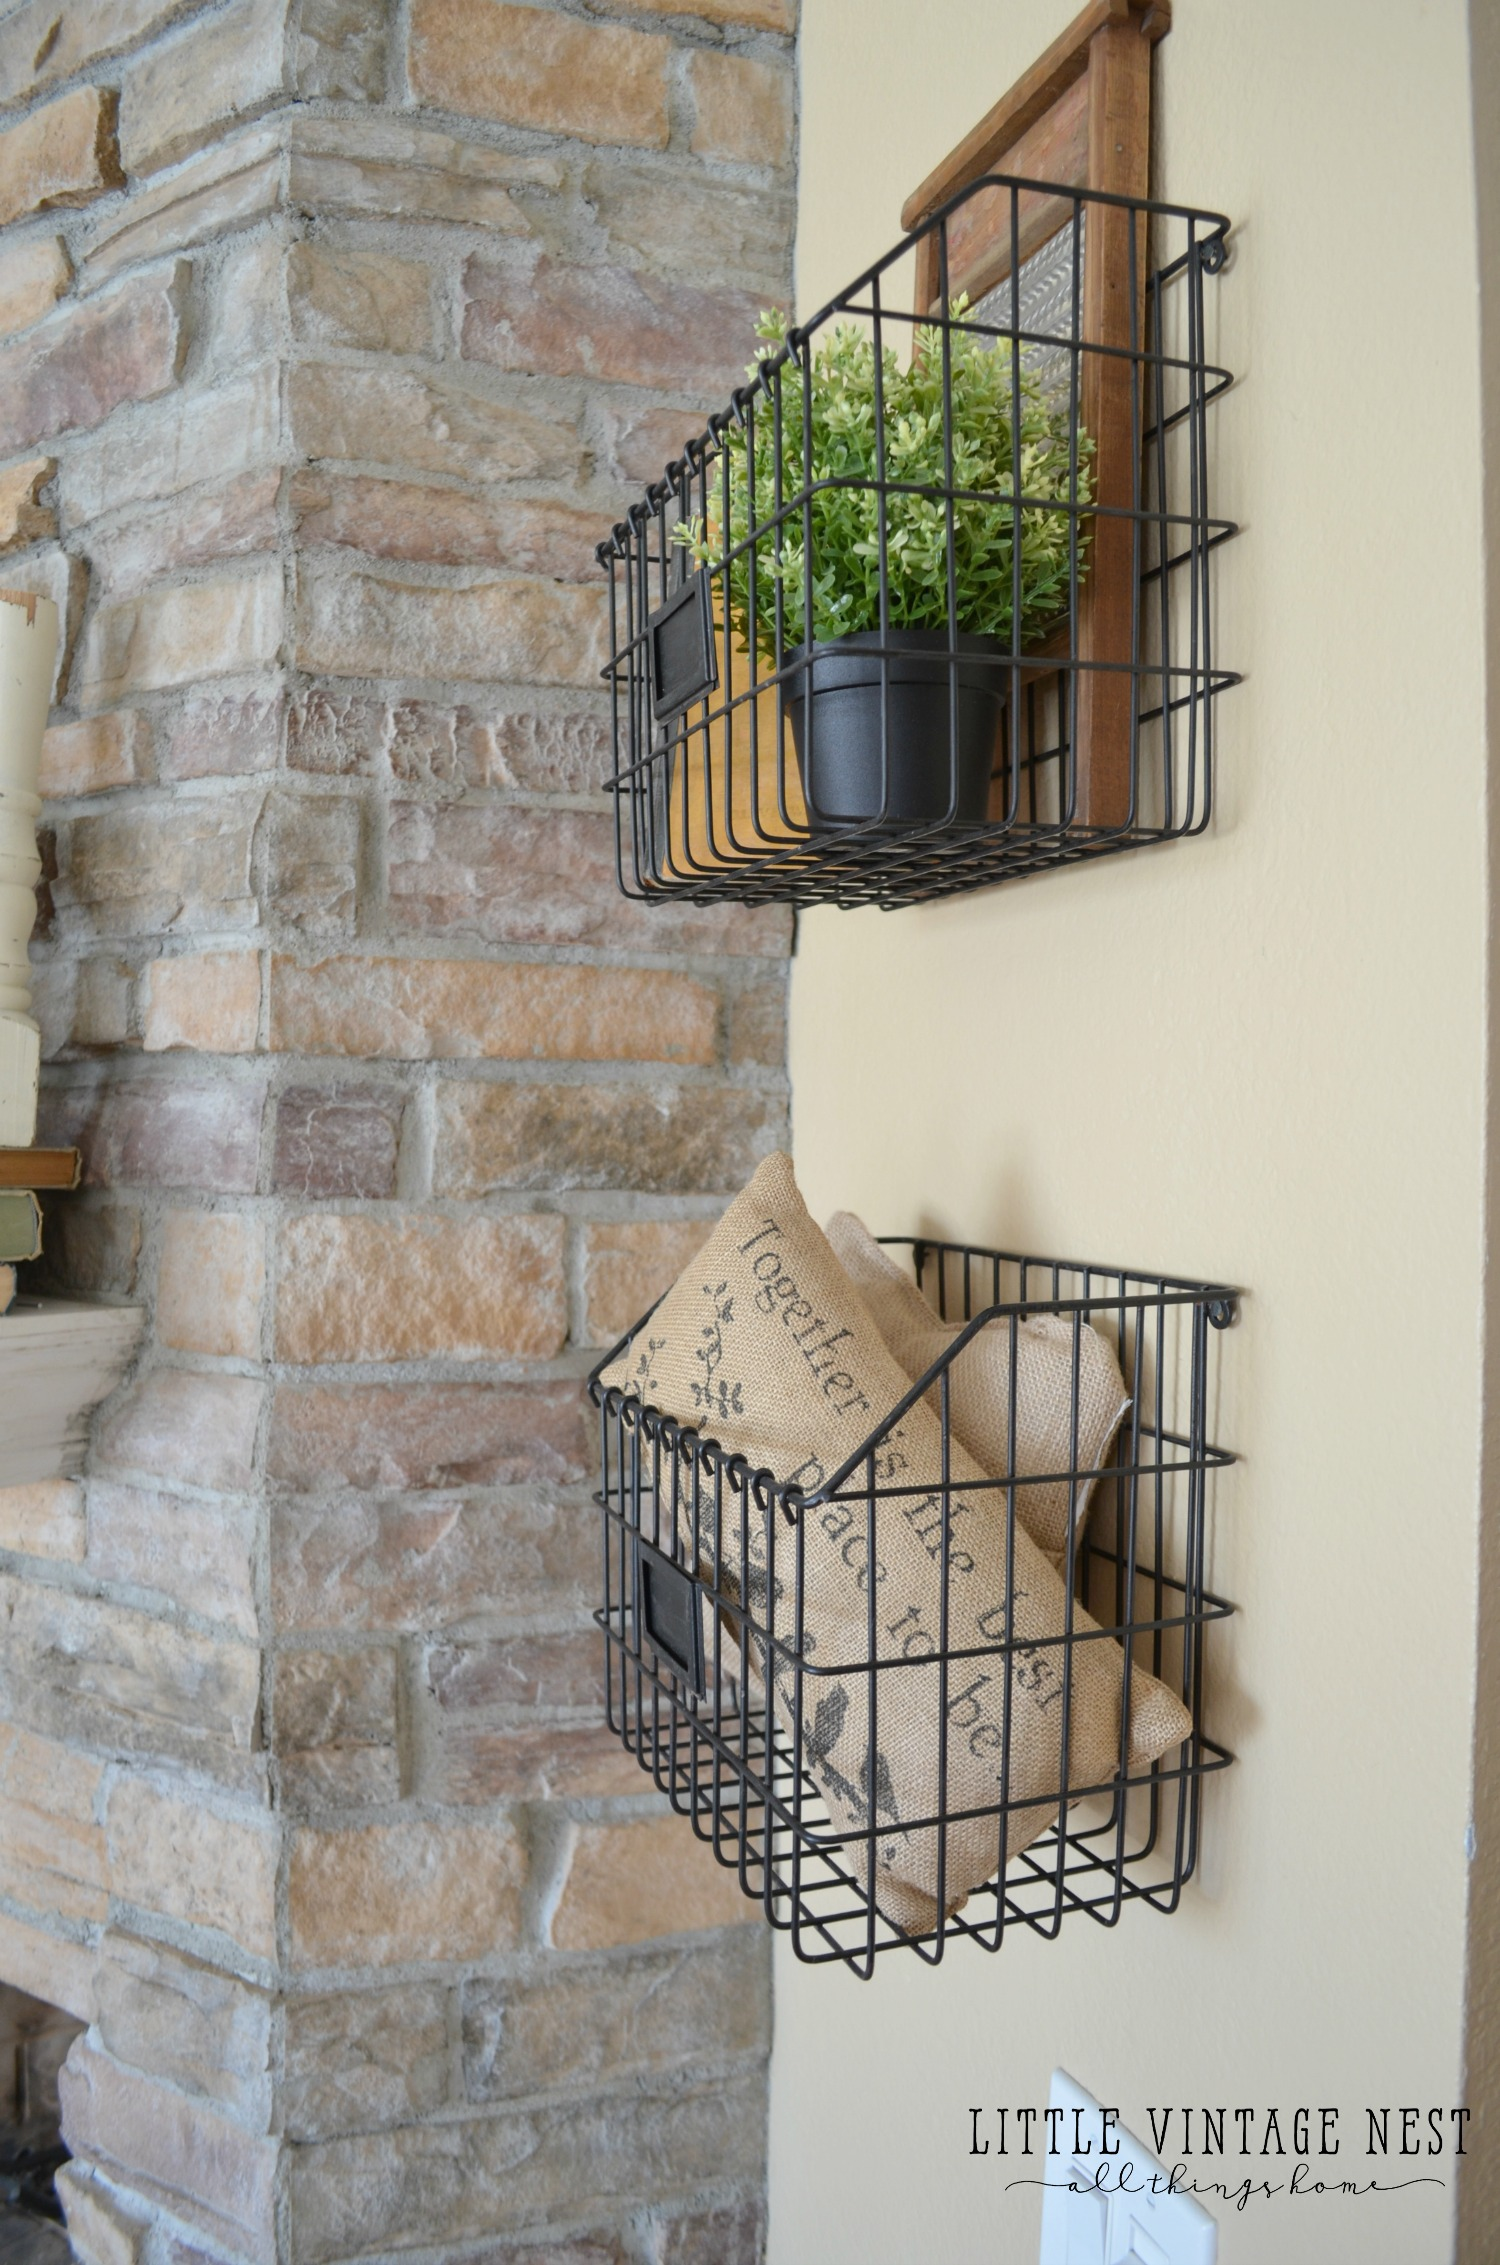 10 Rustic Ways to Decorate With Vintage Wire Baskets | Vintage Wire Baskets, Vintage Wire Basket Decor, Farmhouse Decor, Farmhouse Home Decor, Home Decor, DIY Home Decor, Home Decor Ideas